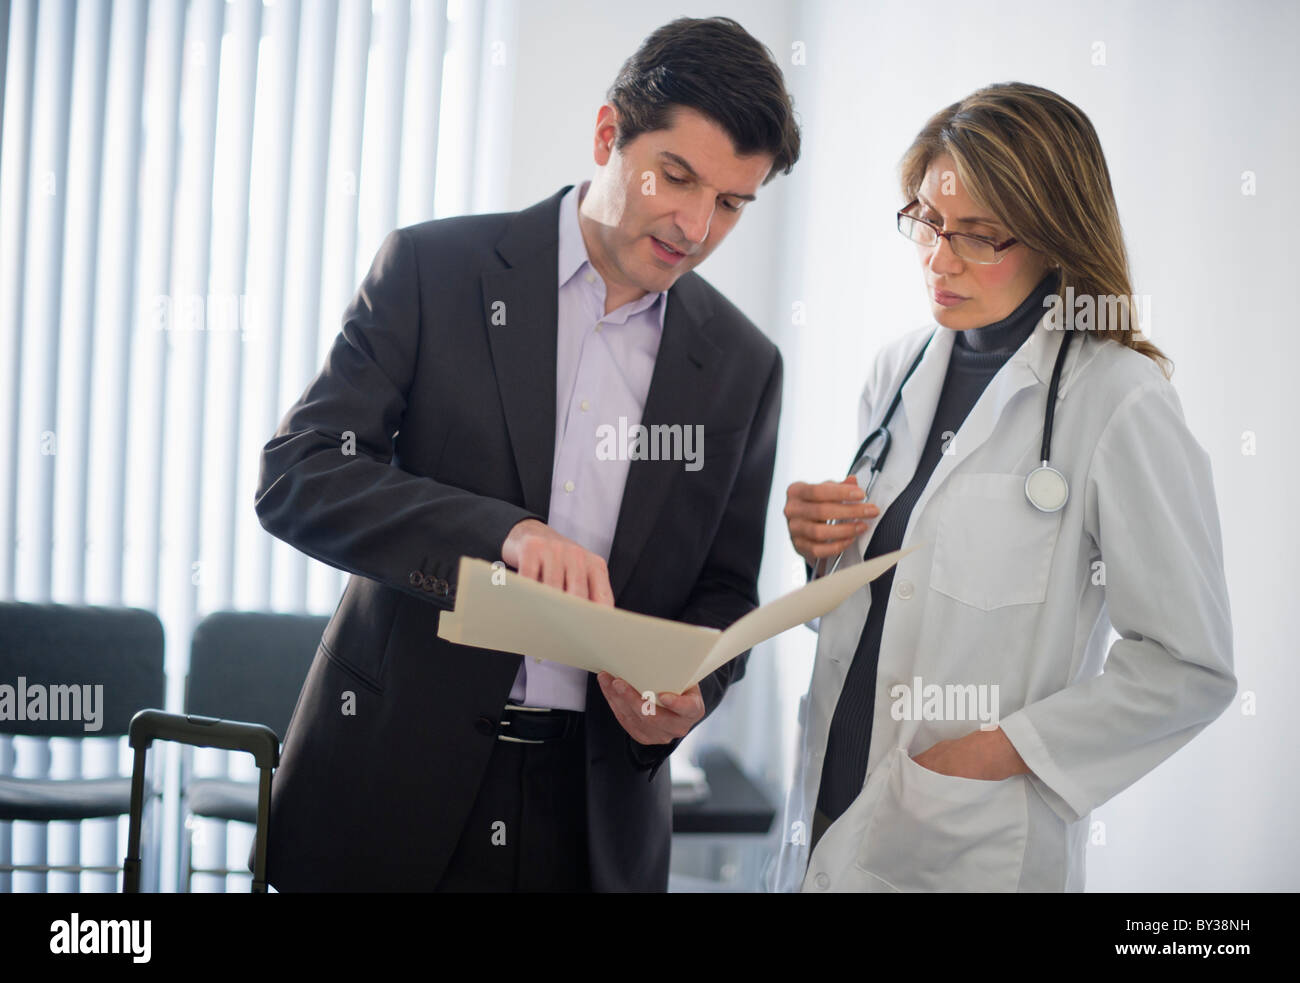 Delightful USA, New Jersey, Jersey City, Medical Sales Representative Talking With  Female Doctor In